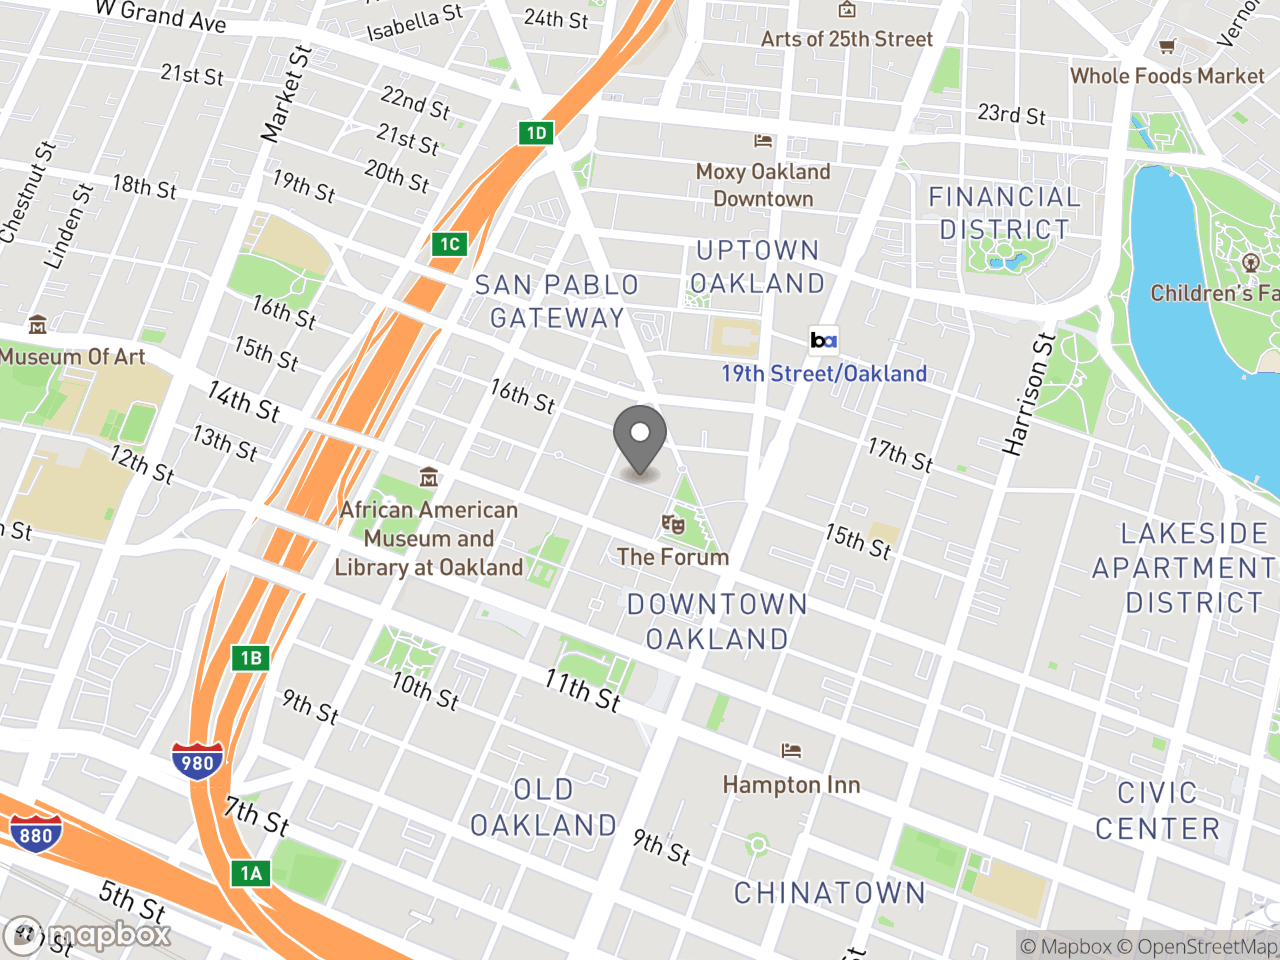 Map location for Mandatory Soft Story Retrofit Program, located at 250 Frank H Ogawa Plaza 2nd Floor in Oakland, CA 94612